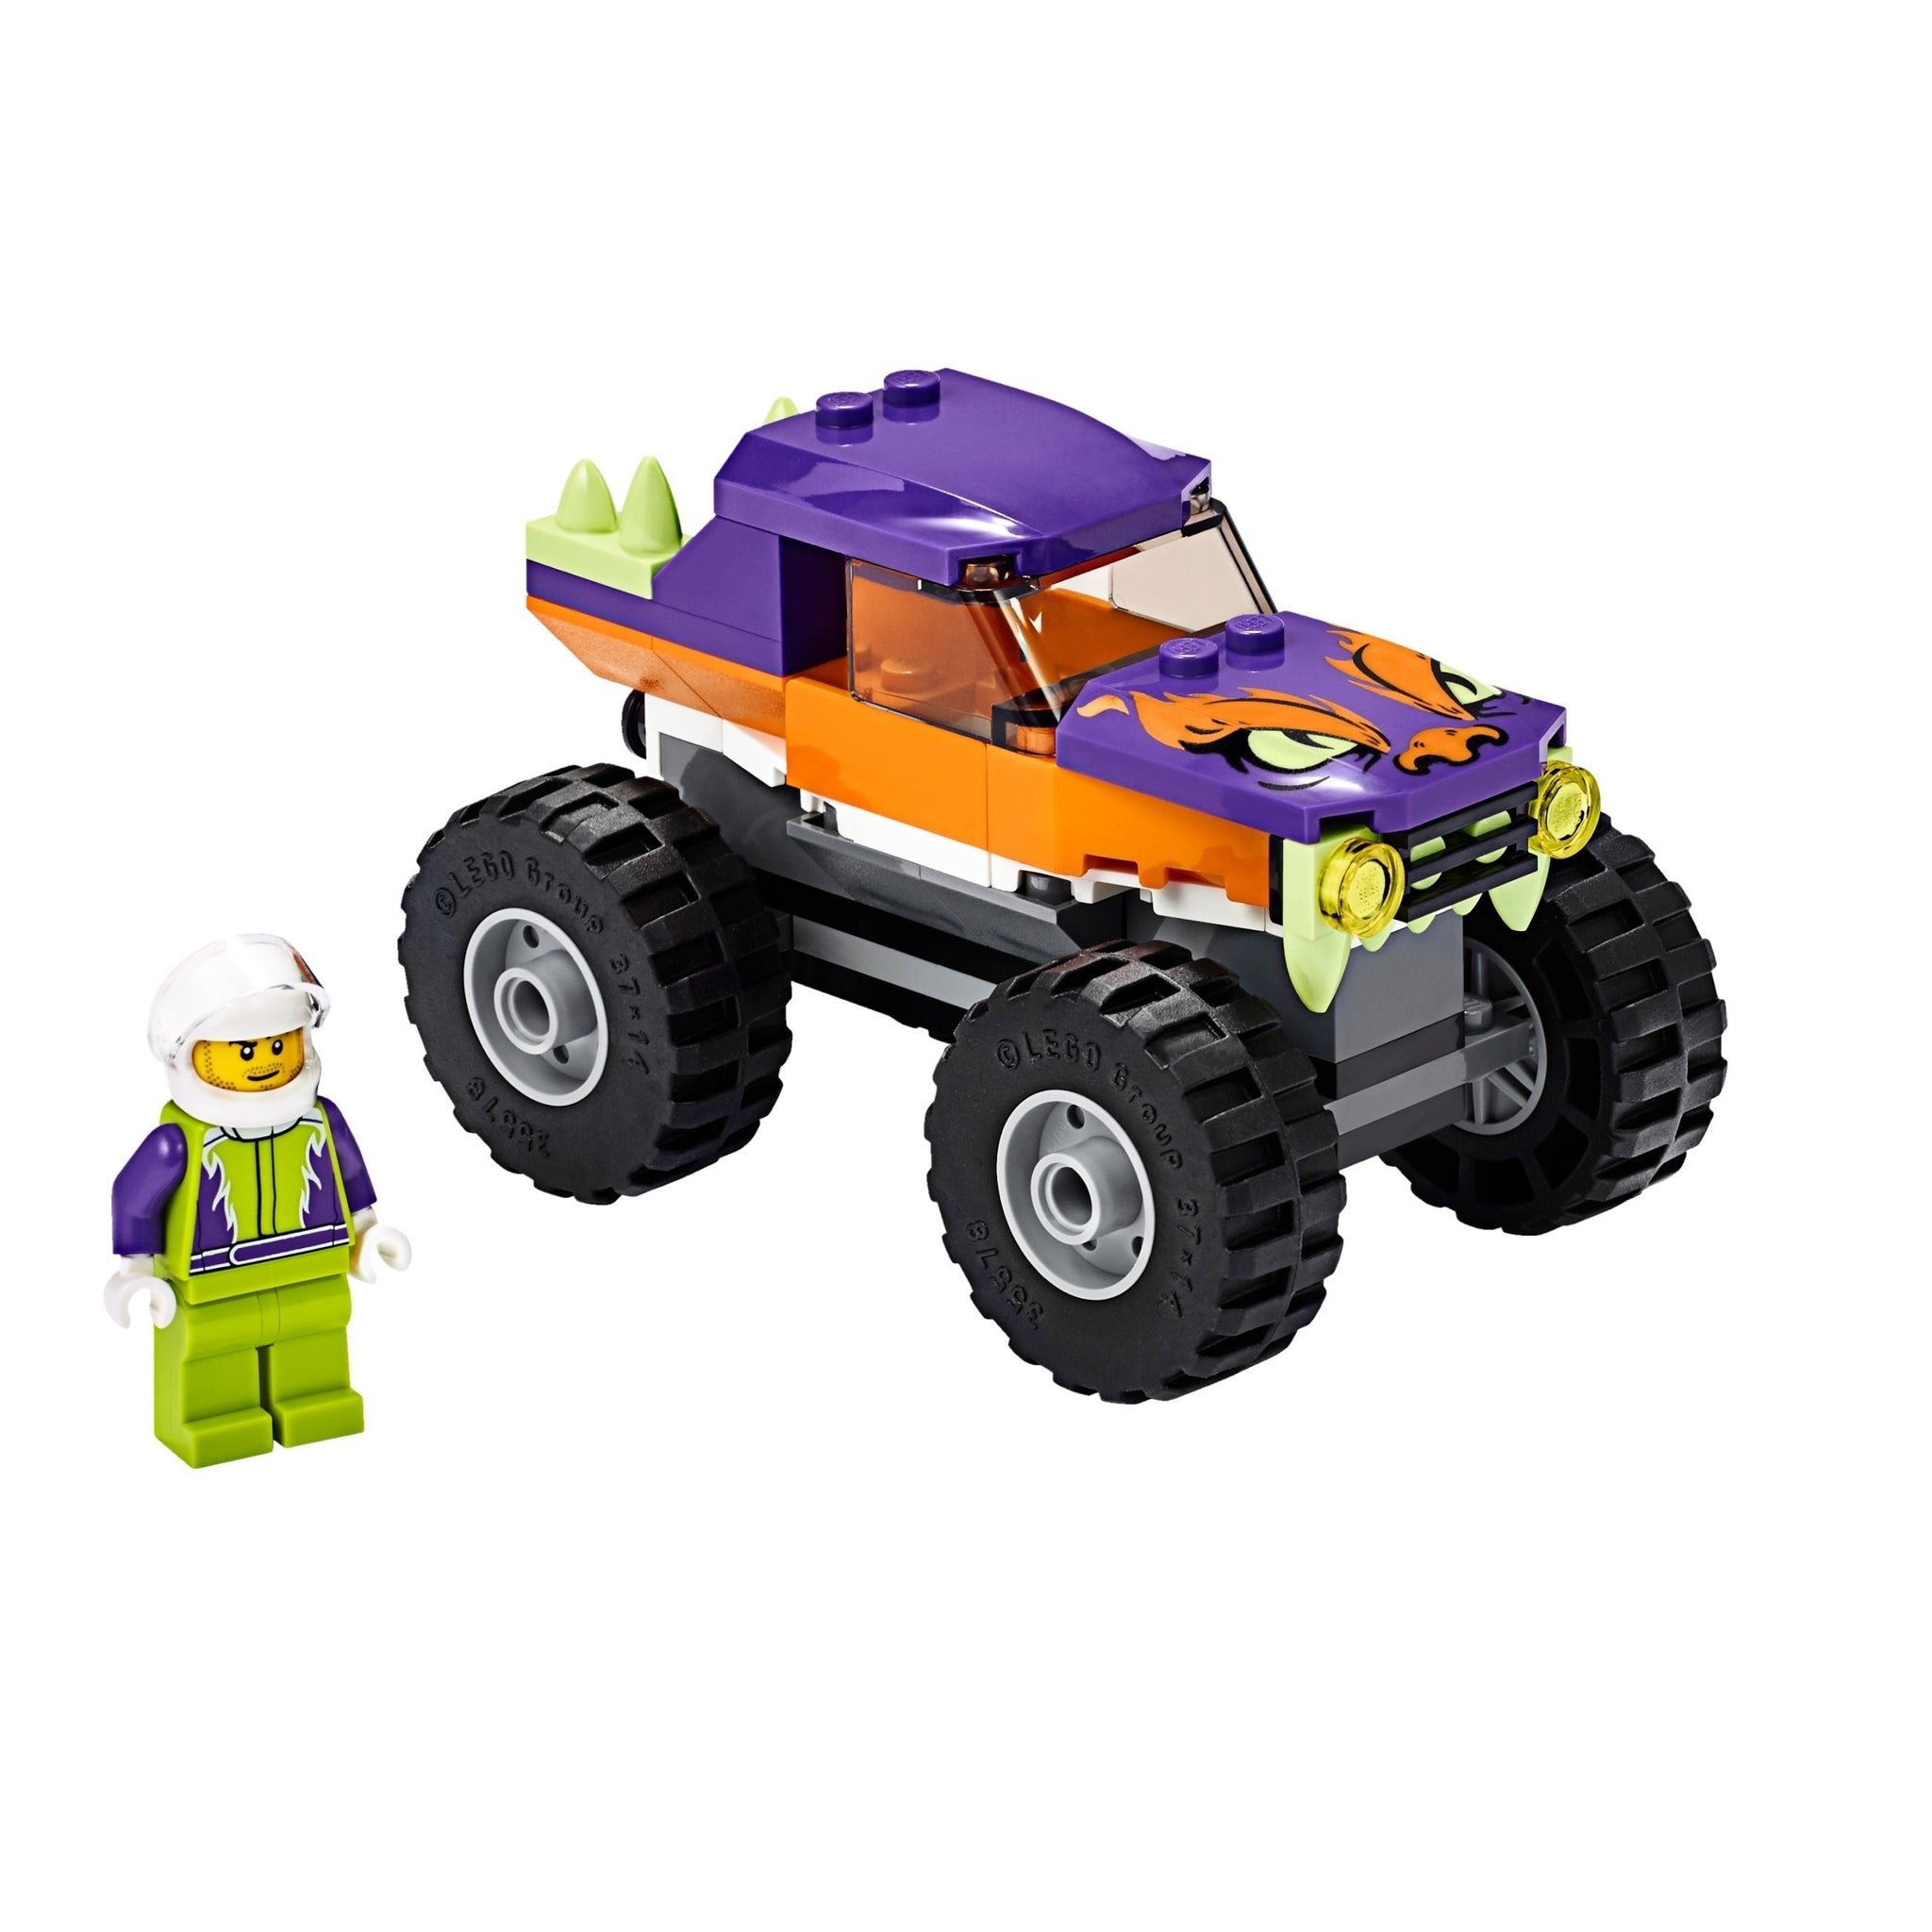 LEGO CITY Monster Truck